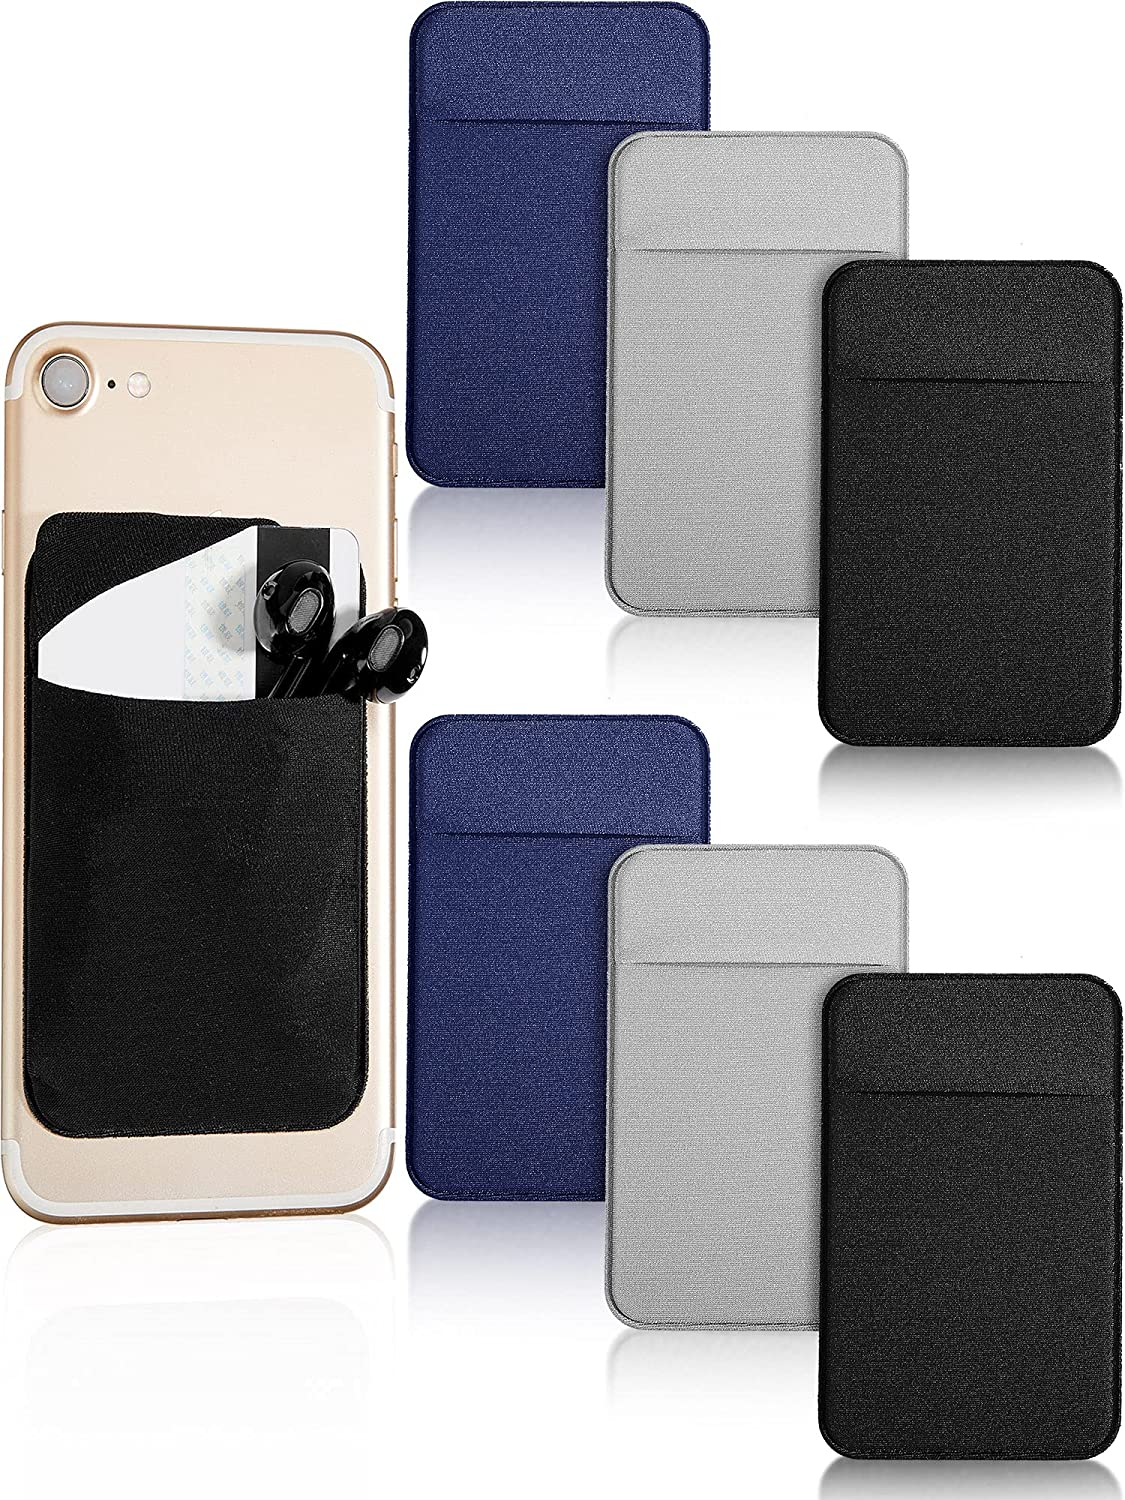 6 Pieces Cell Phone Card Holder Phone Card Wallet Phone Pouch Pocket Wallet Phone Pouch Pocket Sticker Stretch Card Sleeve Phone Card Case Sticker for Back of Most Smartphone (Black, Dark Blue, Gray)